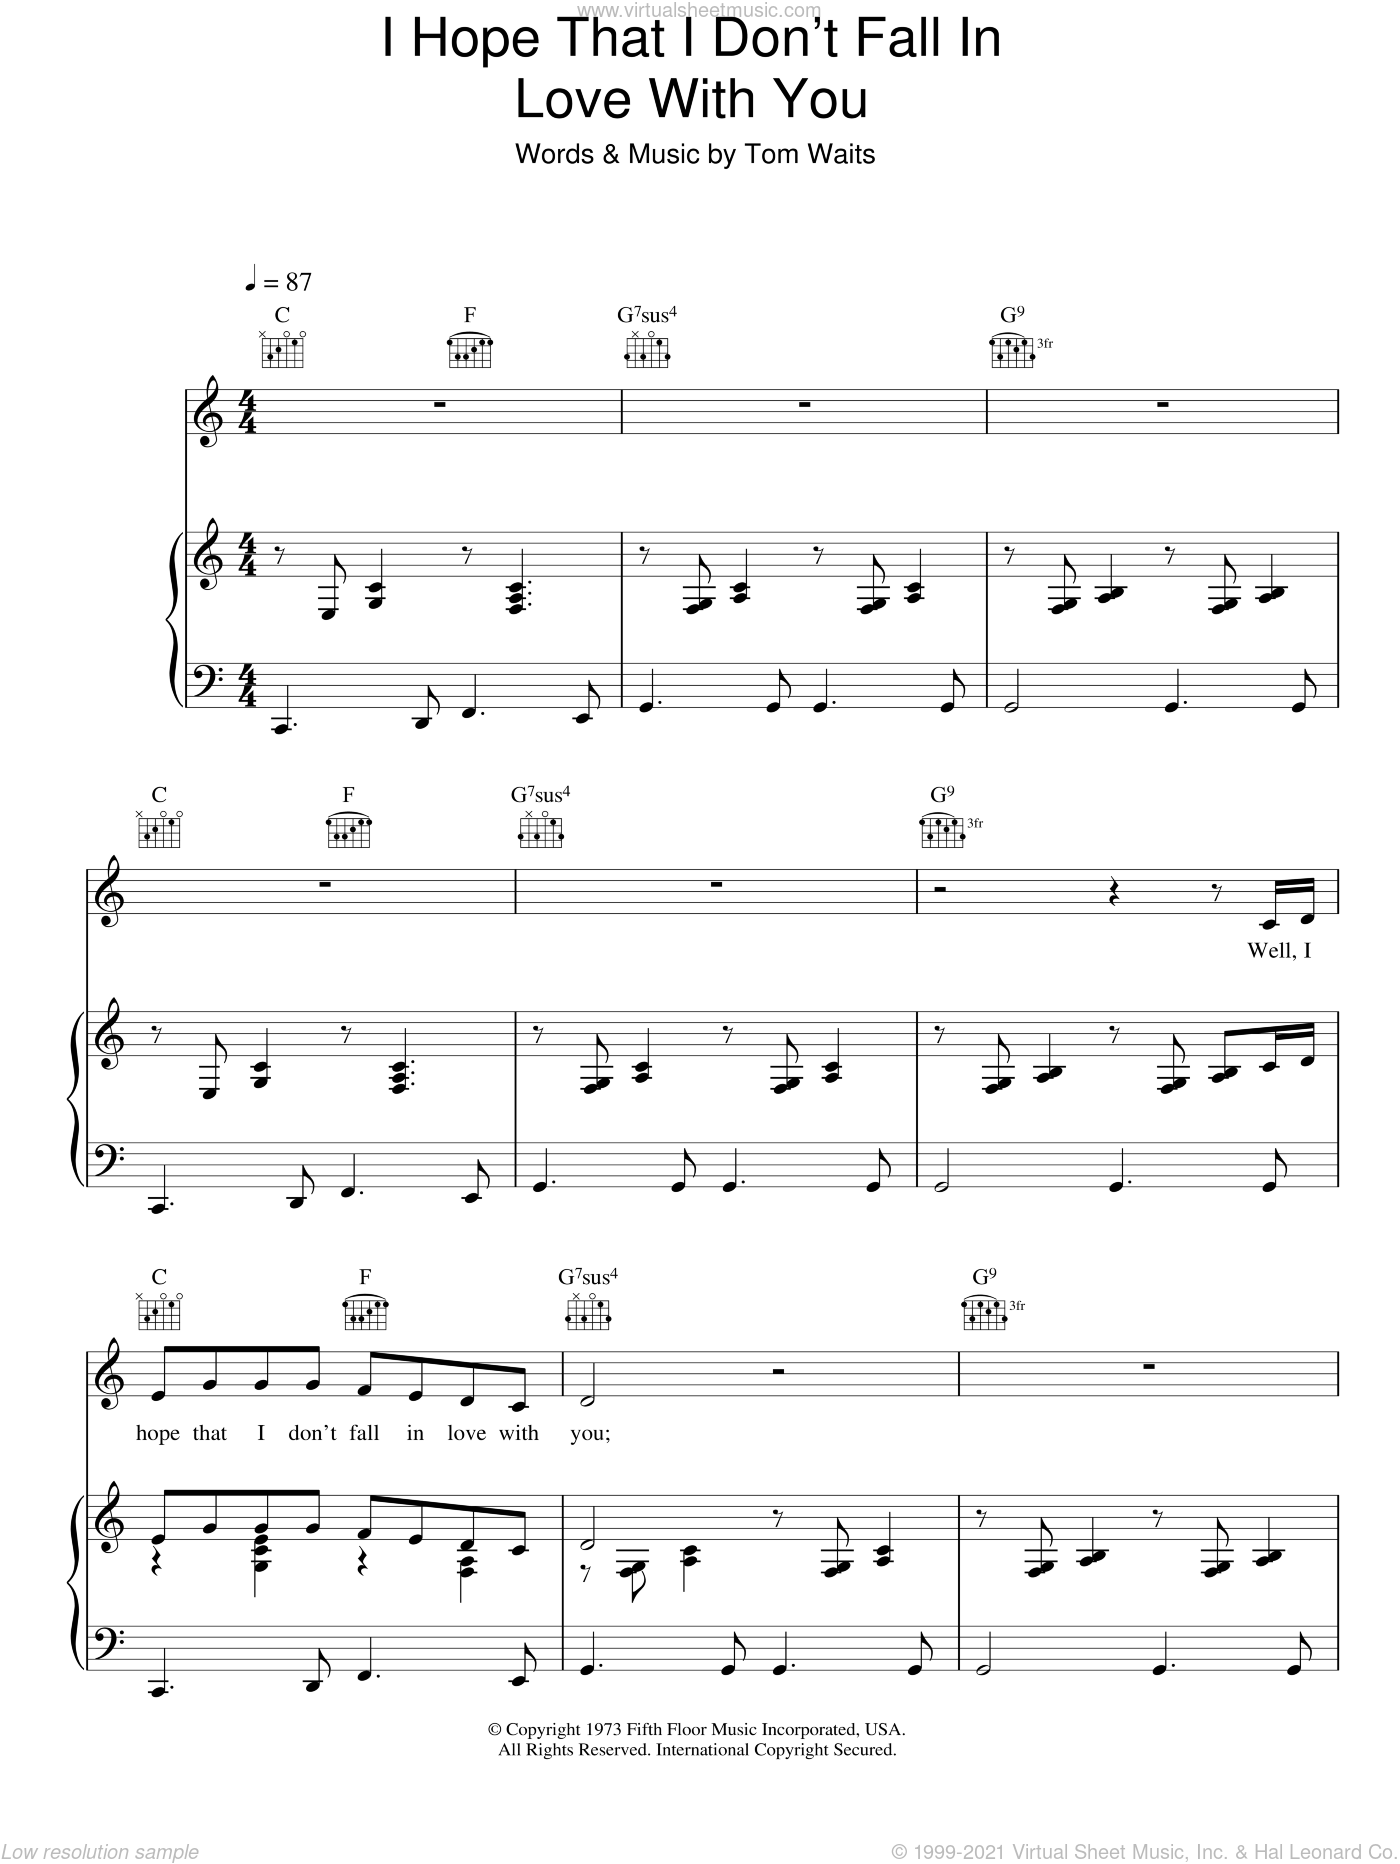 I Hope That I Don't Fall In Love With You sheet music for voice, piano or guitar by Tom Waits. Score Image Preview.